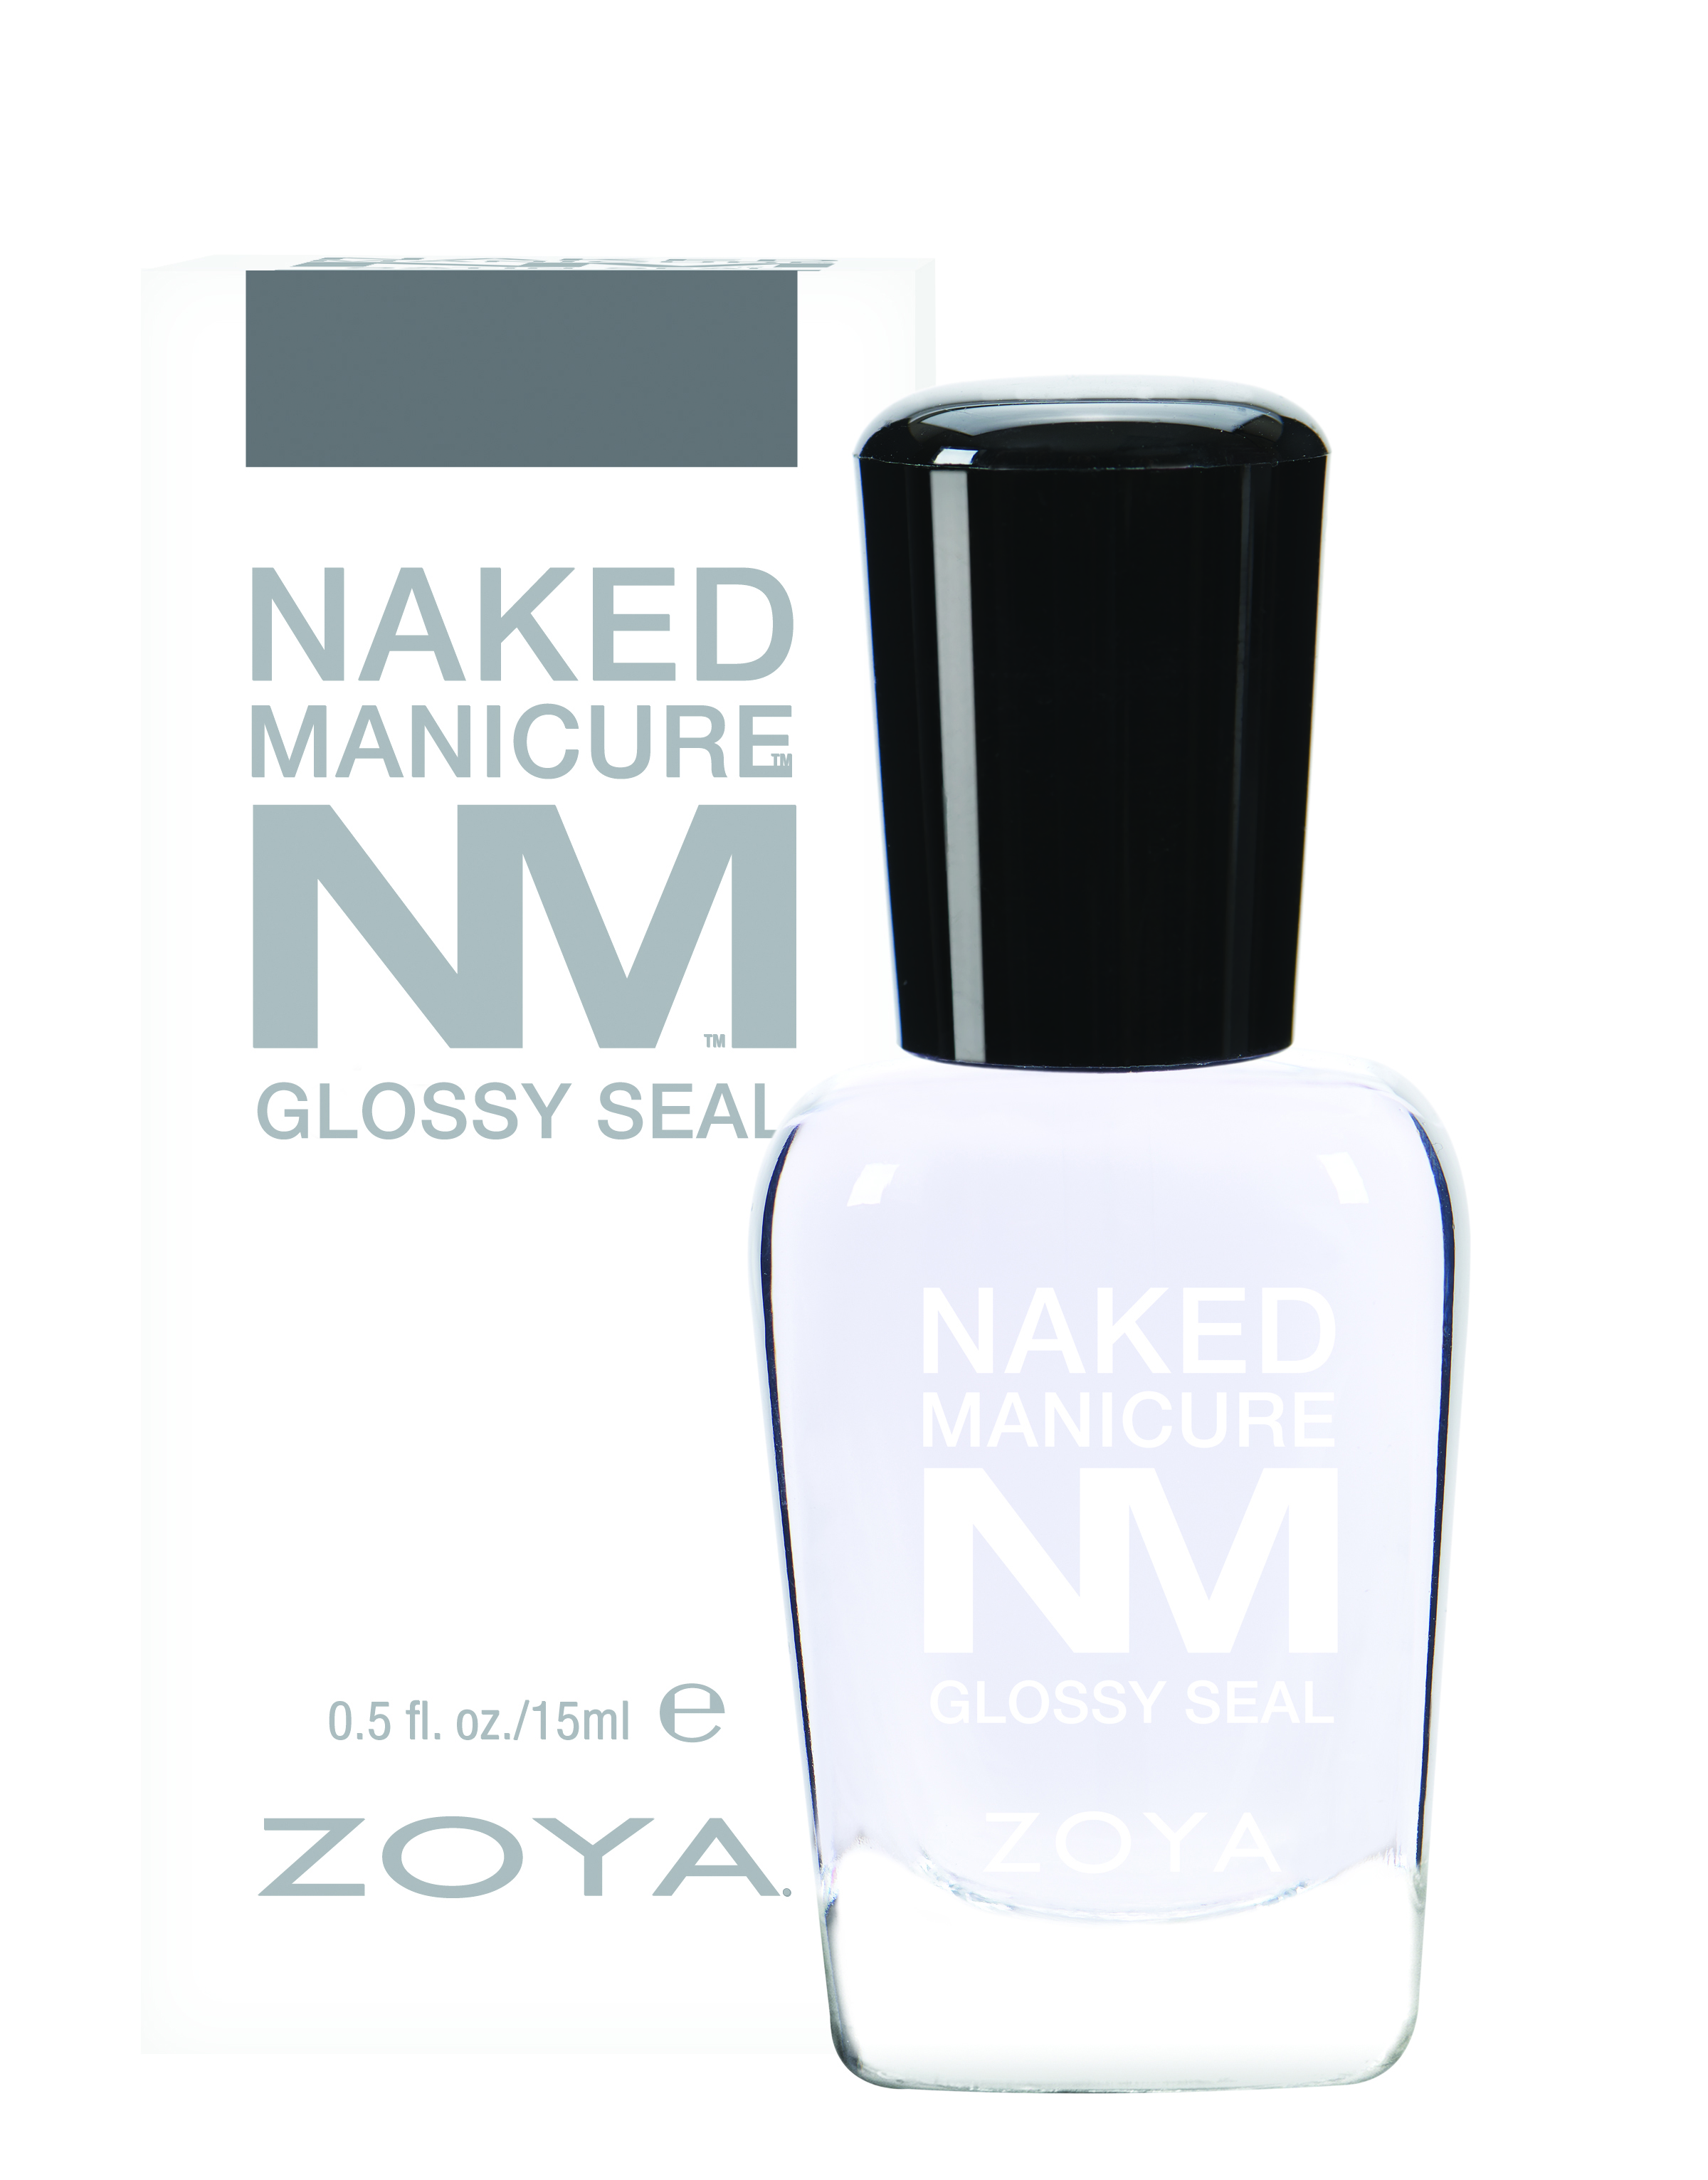 Naked Manicure Glossy Seal product impression